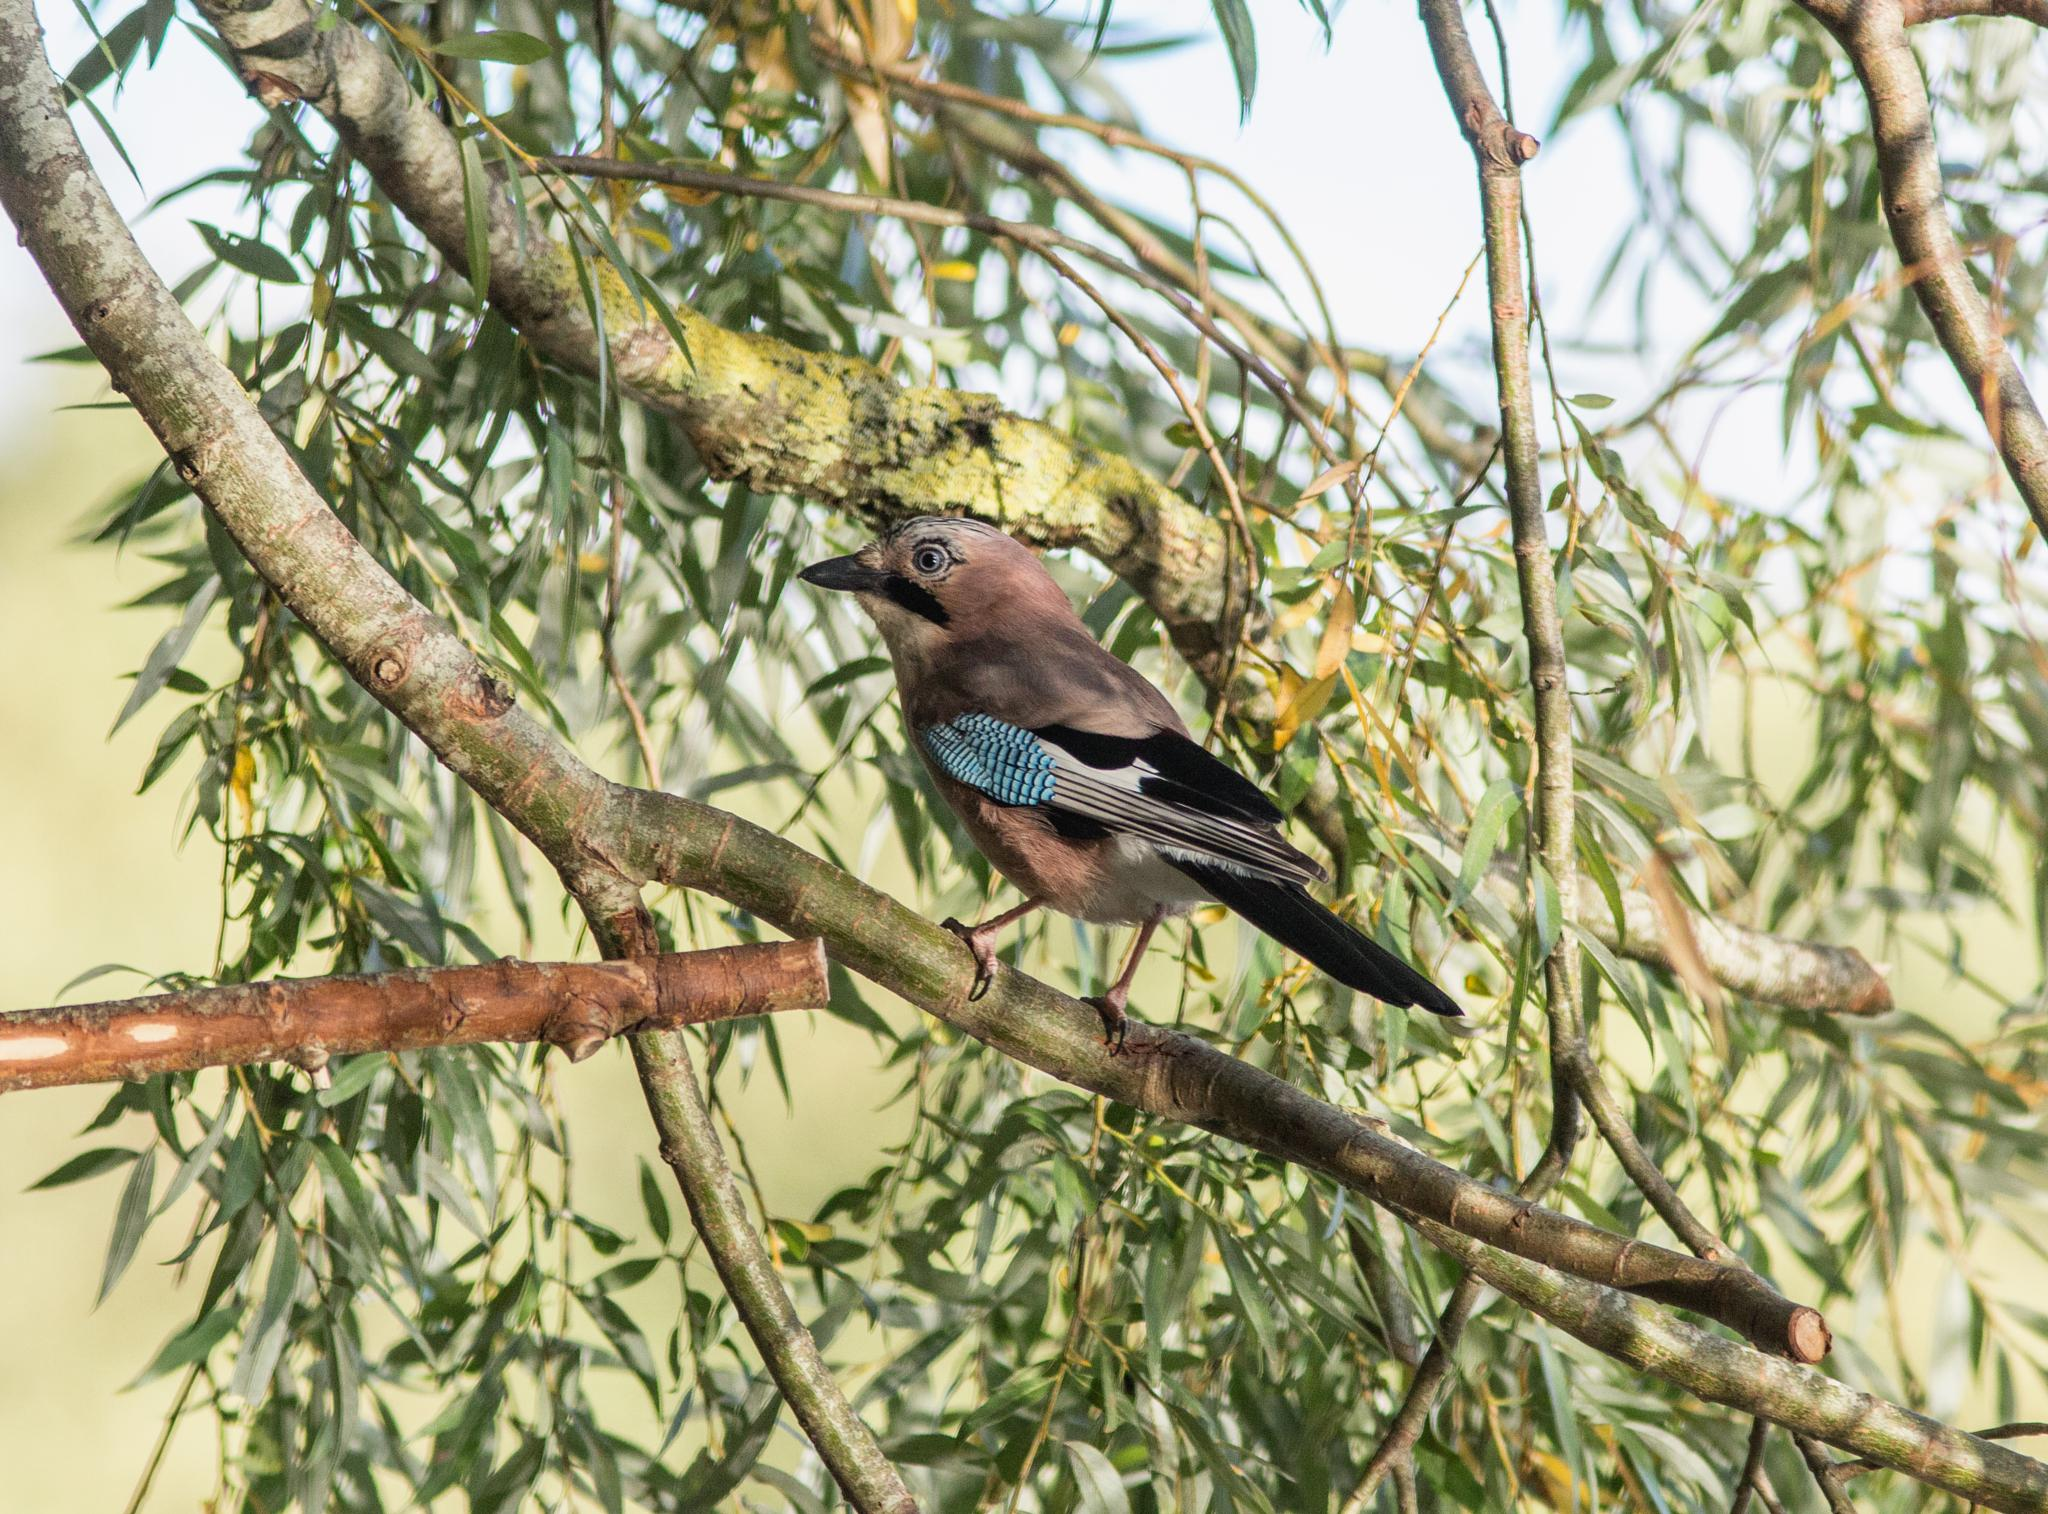 Jay by Philip Cooper